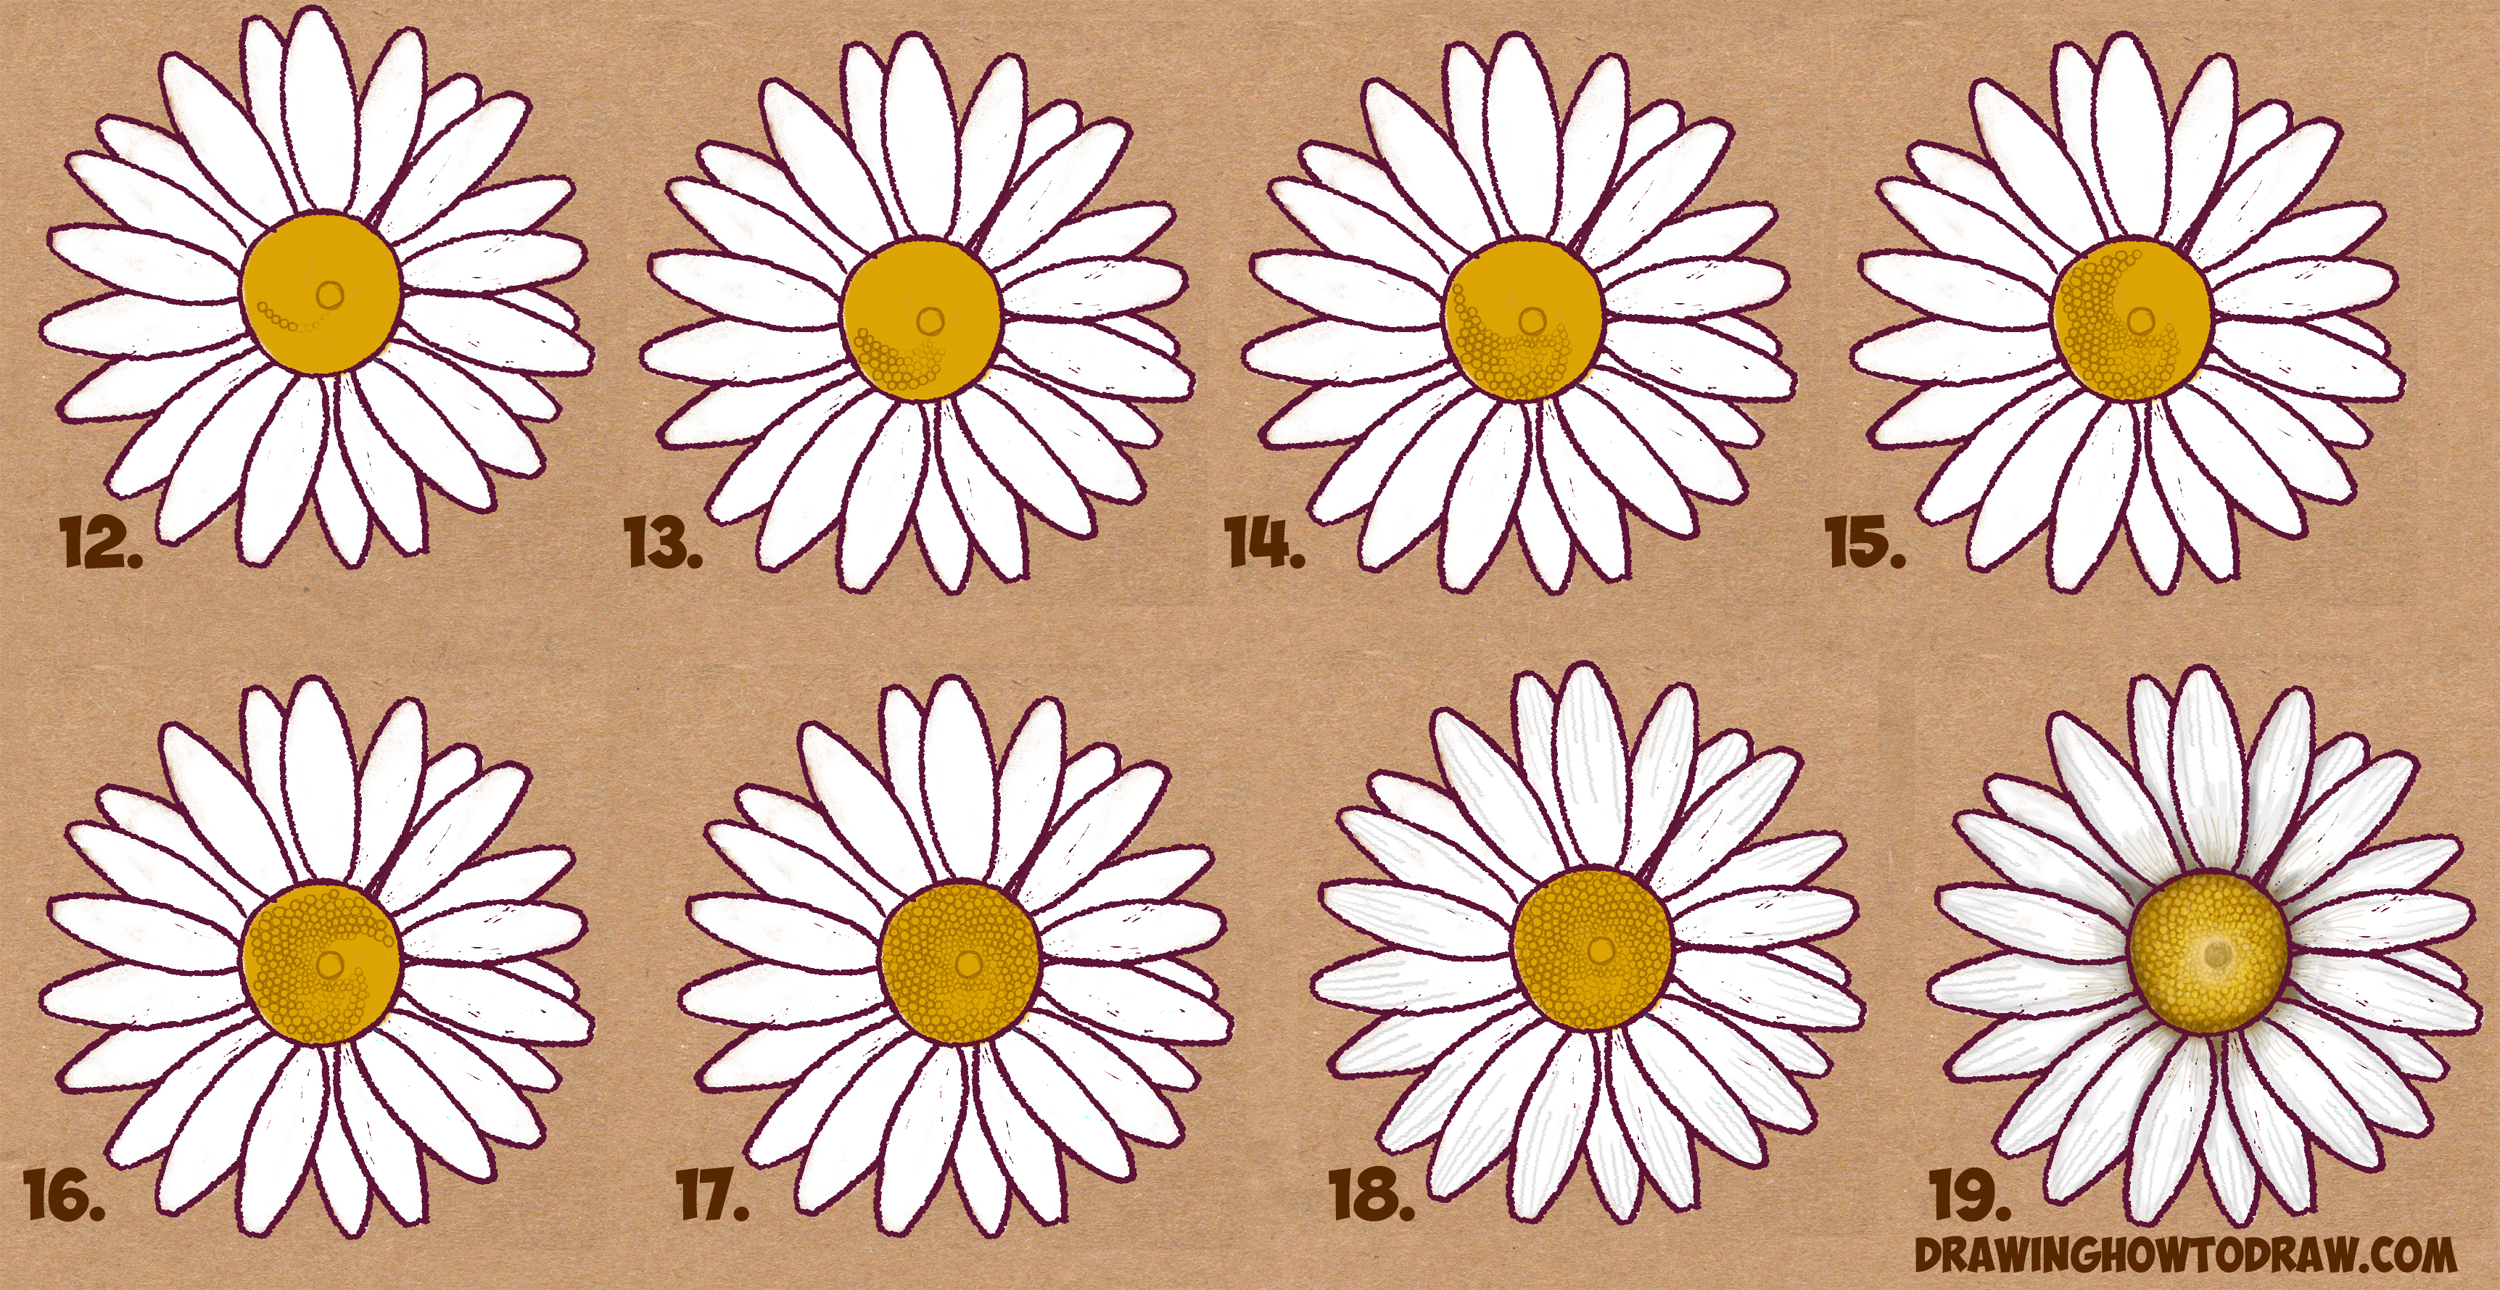 Flower Daisy Drawing At Getdrawings Free For Personal Use